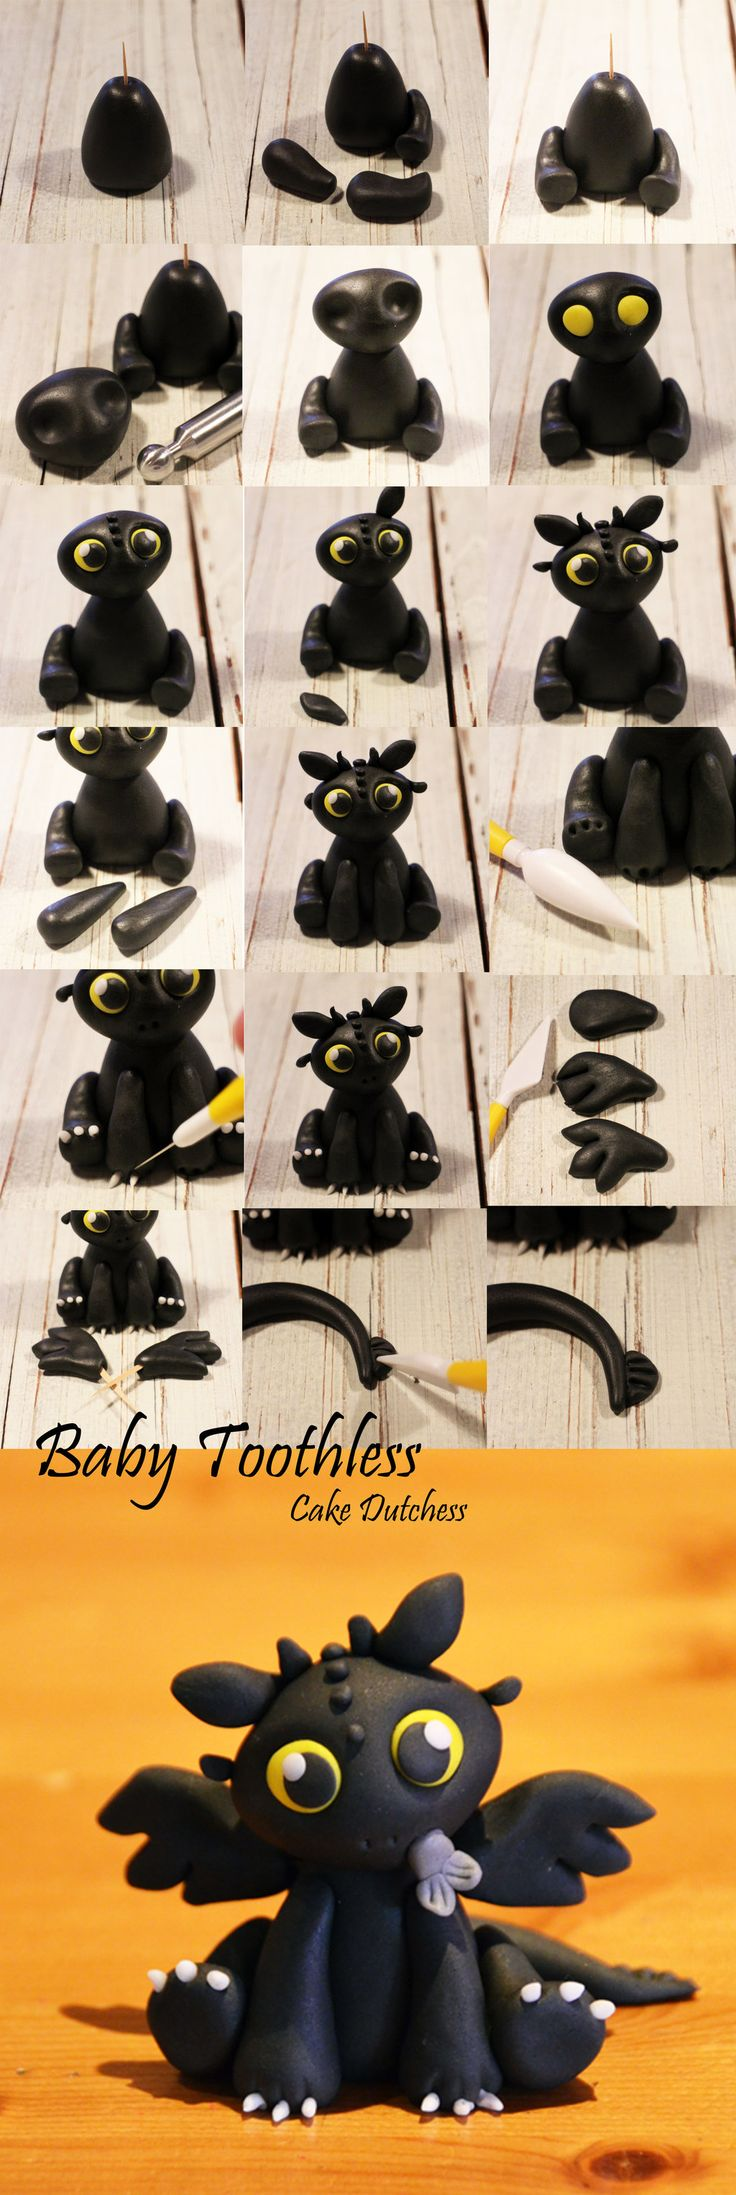 "Baby Toothless Tutorial by Naera the Cake Dutchess. ""How To Train Your Dragon"""